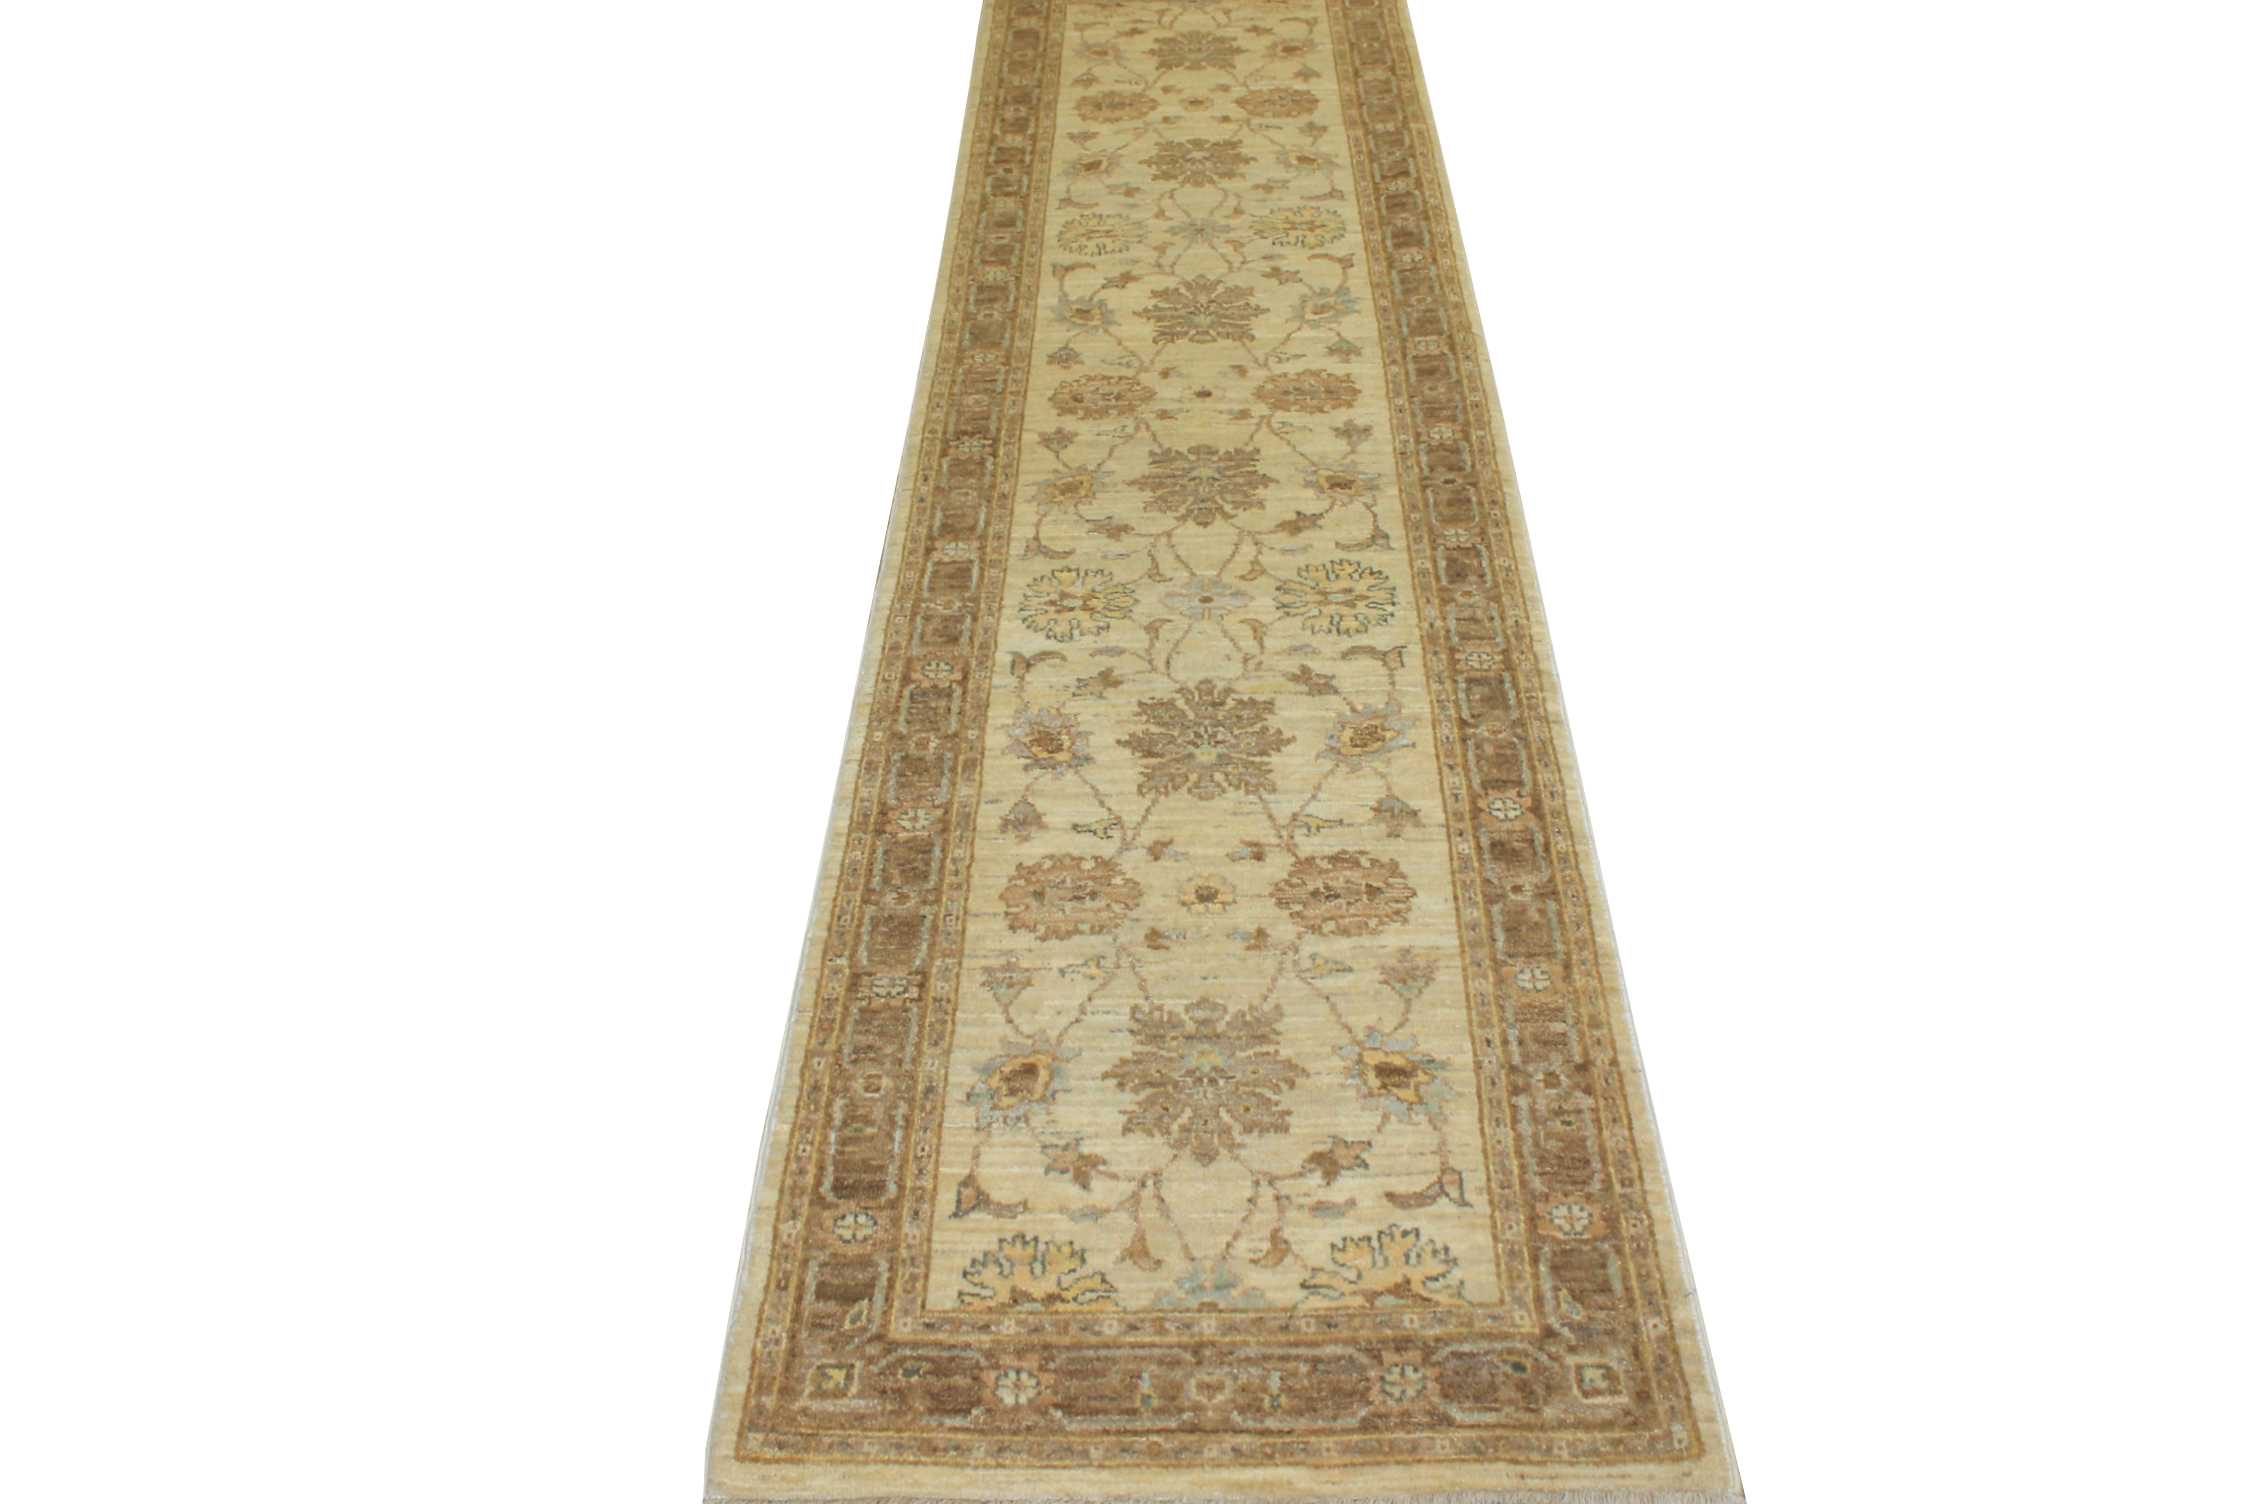 10 ft. Runner Peshawar Hand Knotted Wool Area Rug - MR14182